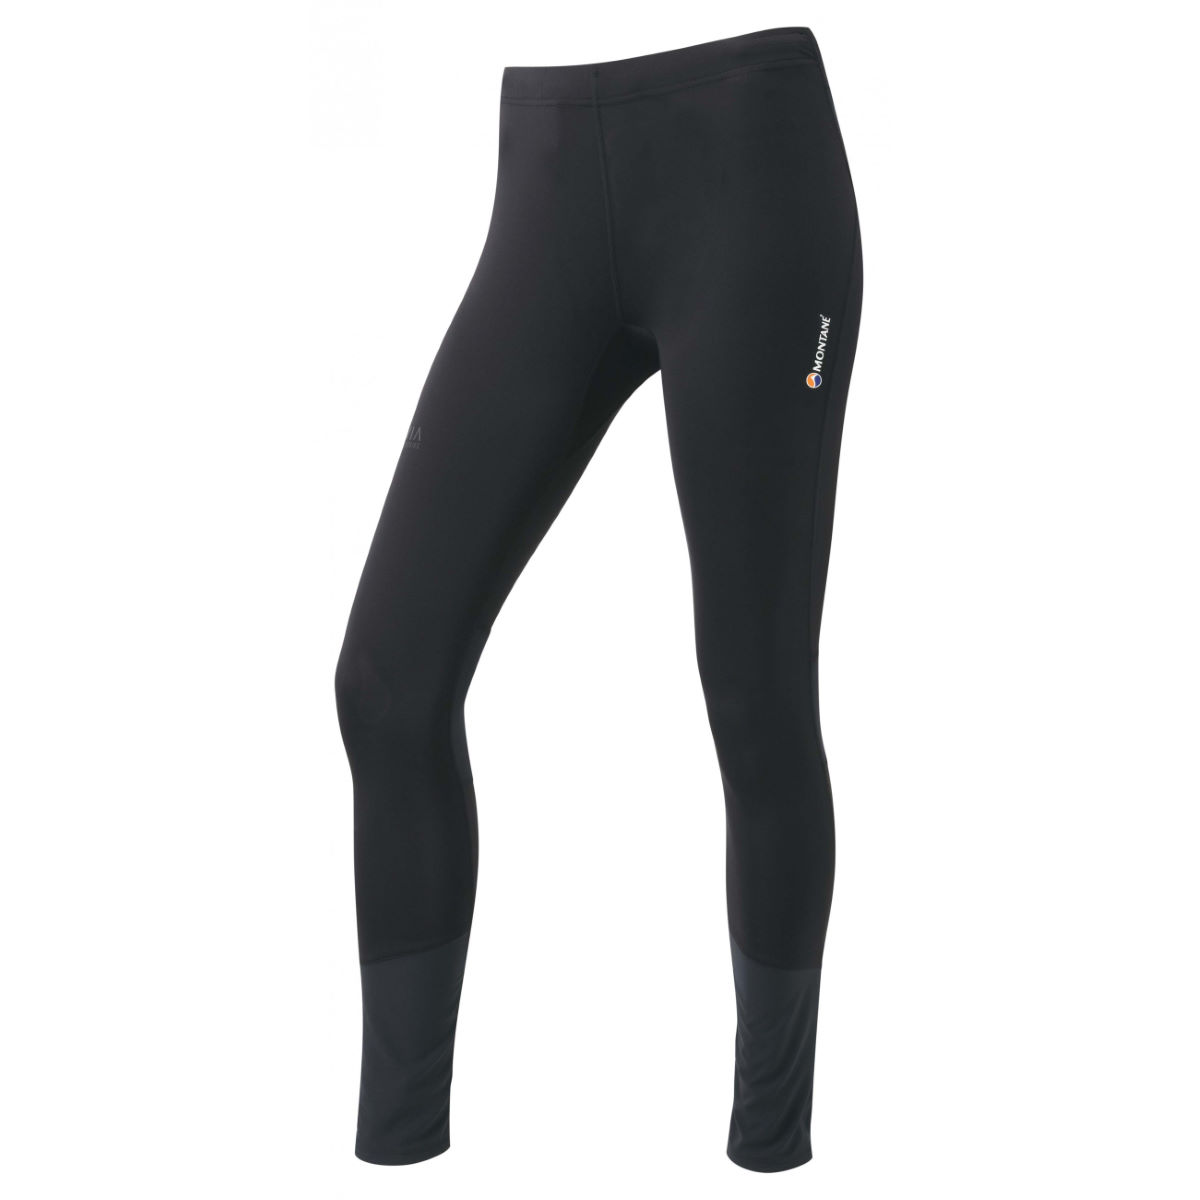 Collant long Femme Montane Trail Series (AH16) - L Noir Collants